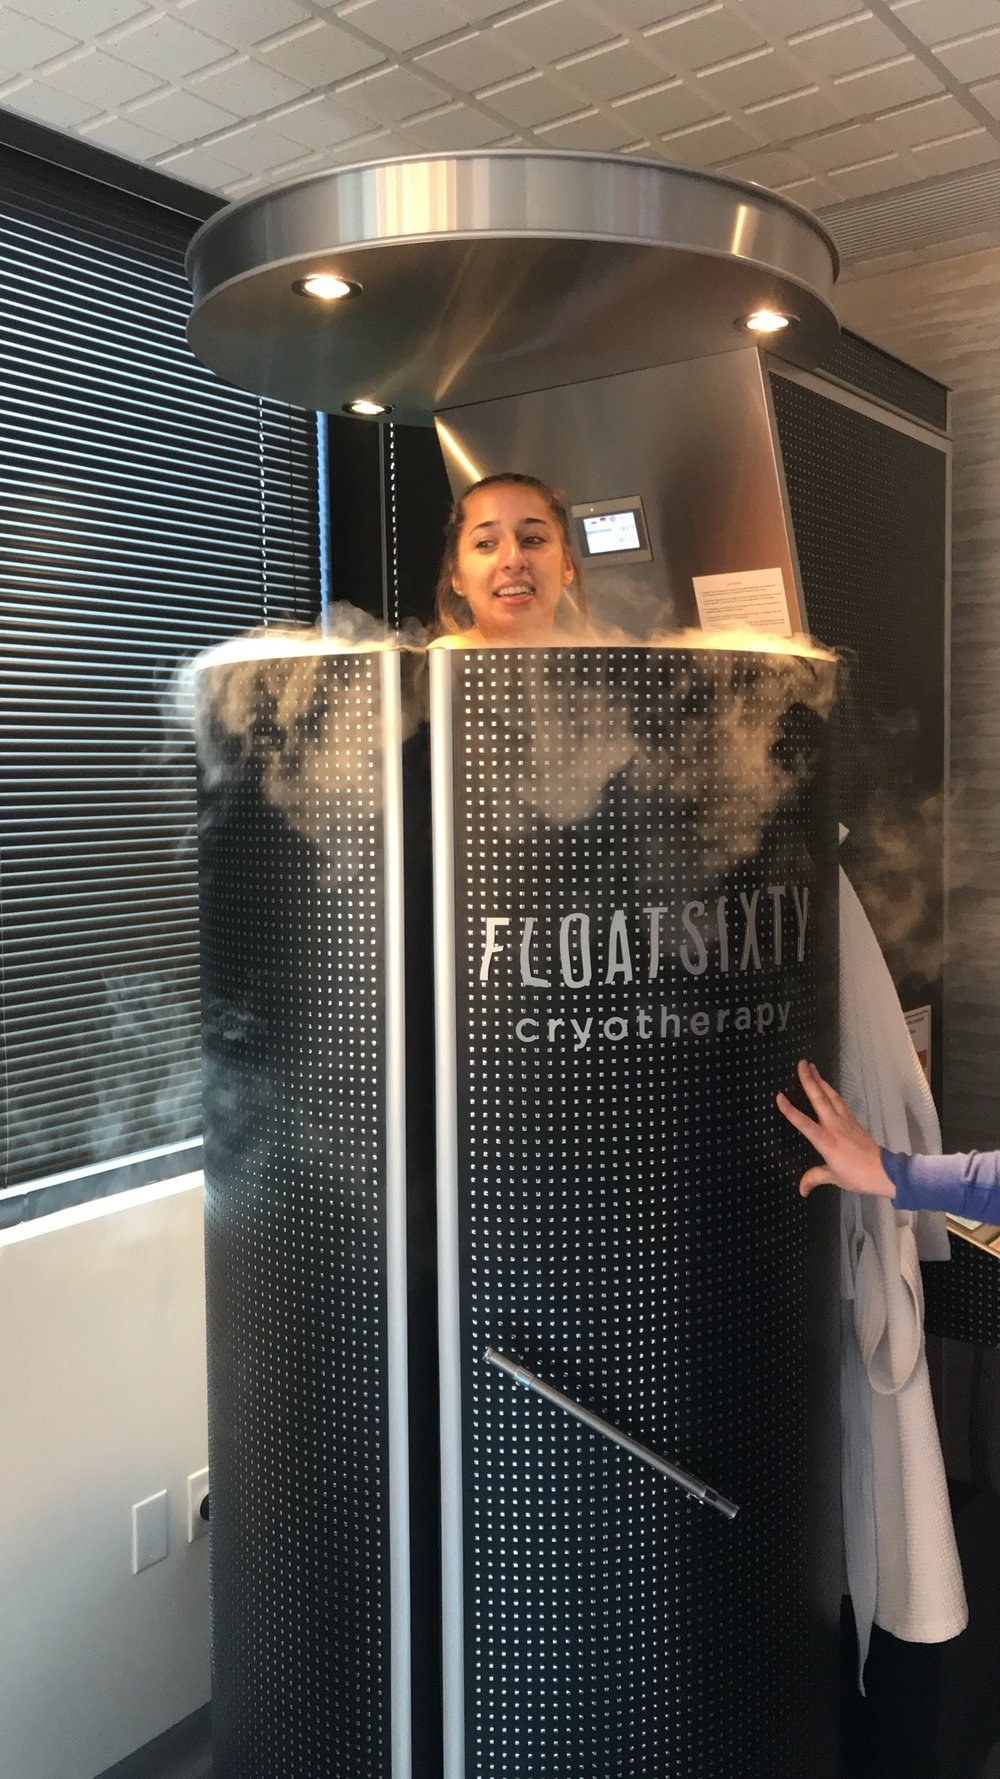 WHOLE BODY & LOCALIZED CRYOTHERAPY - ONLY AVAILABLE AT FLOAT SIXTY NORTHWEST INDIANA$40 FOR FIRST TIME CRYOTHERAPY SESSIONS. 2-3 MINUTES FOR WHOLE BODY AND 10-16 MINUTES FOR LOCALIZED CRYO TREATMENT ON SPECIFIC AREA OF THE BODY$65 REGULAR PRICE - $32.50 FOR 1871 MEMBERS$35-$40 PER SESSION WITH A MEMBERSHIP, PACKAGE OR COMMUNITY PROGRAM CODESPECIAL PROGRAMS FOR VETERANS, FIRST RESPONDERS & STUDENTSVisit our Float Sixty Northwest Indiana store.